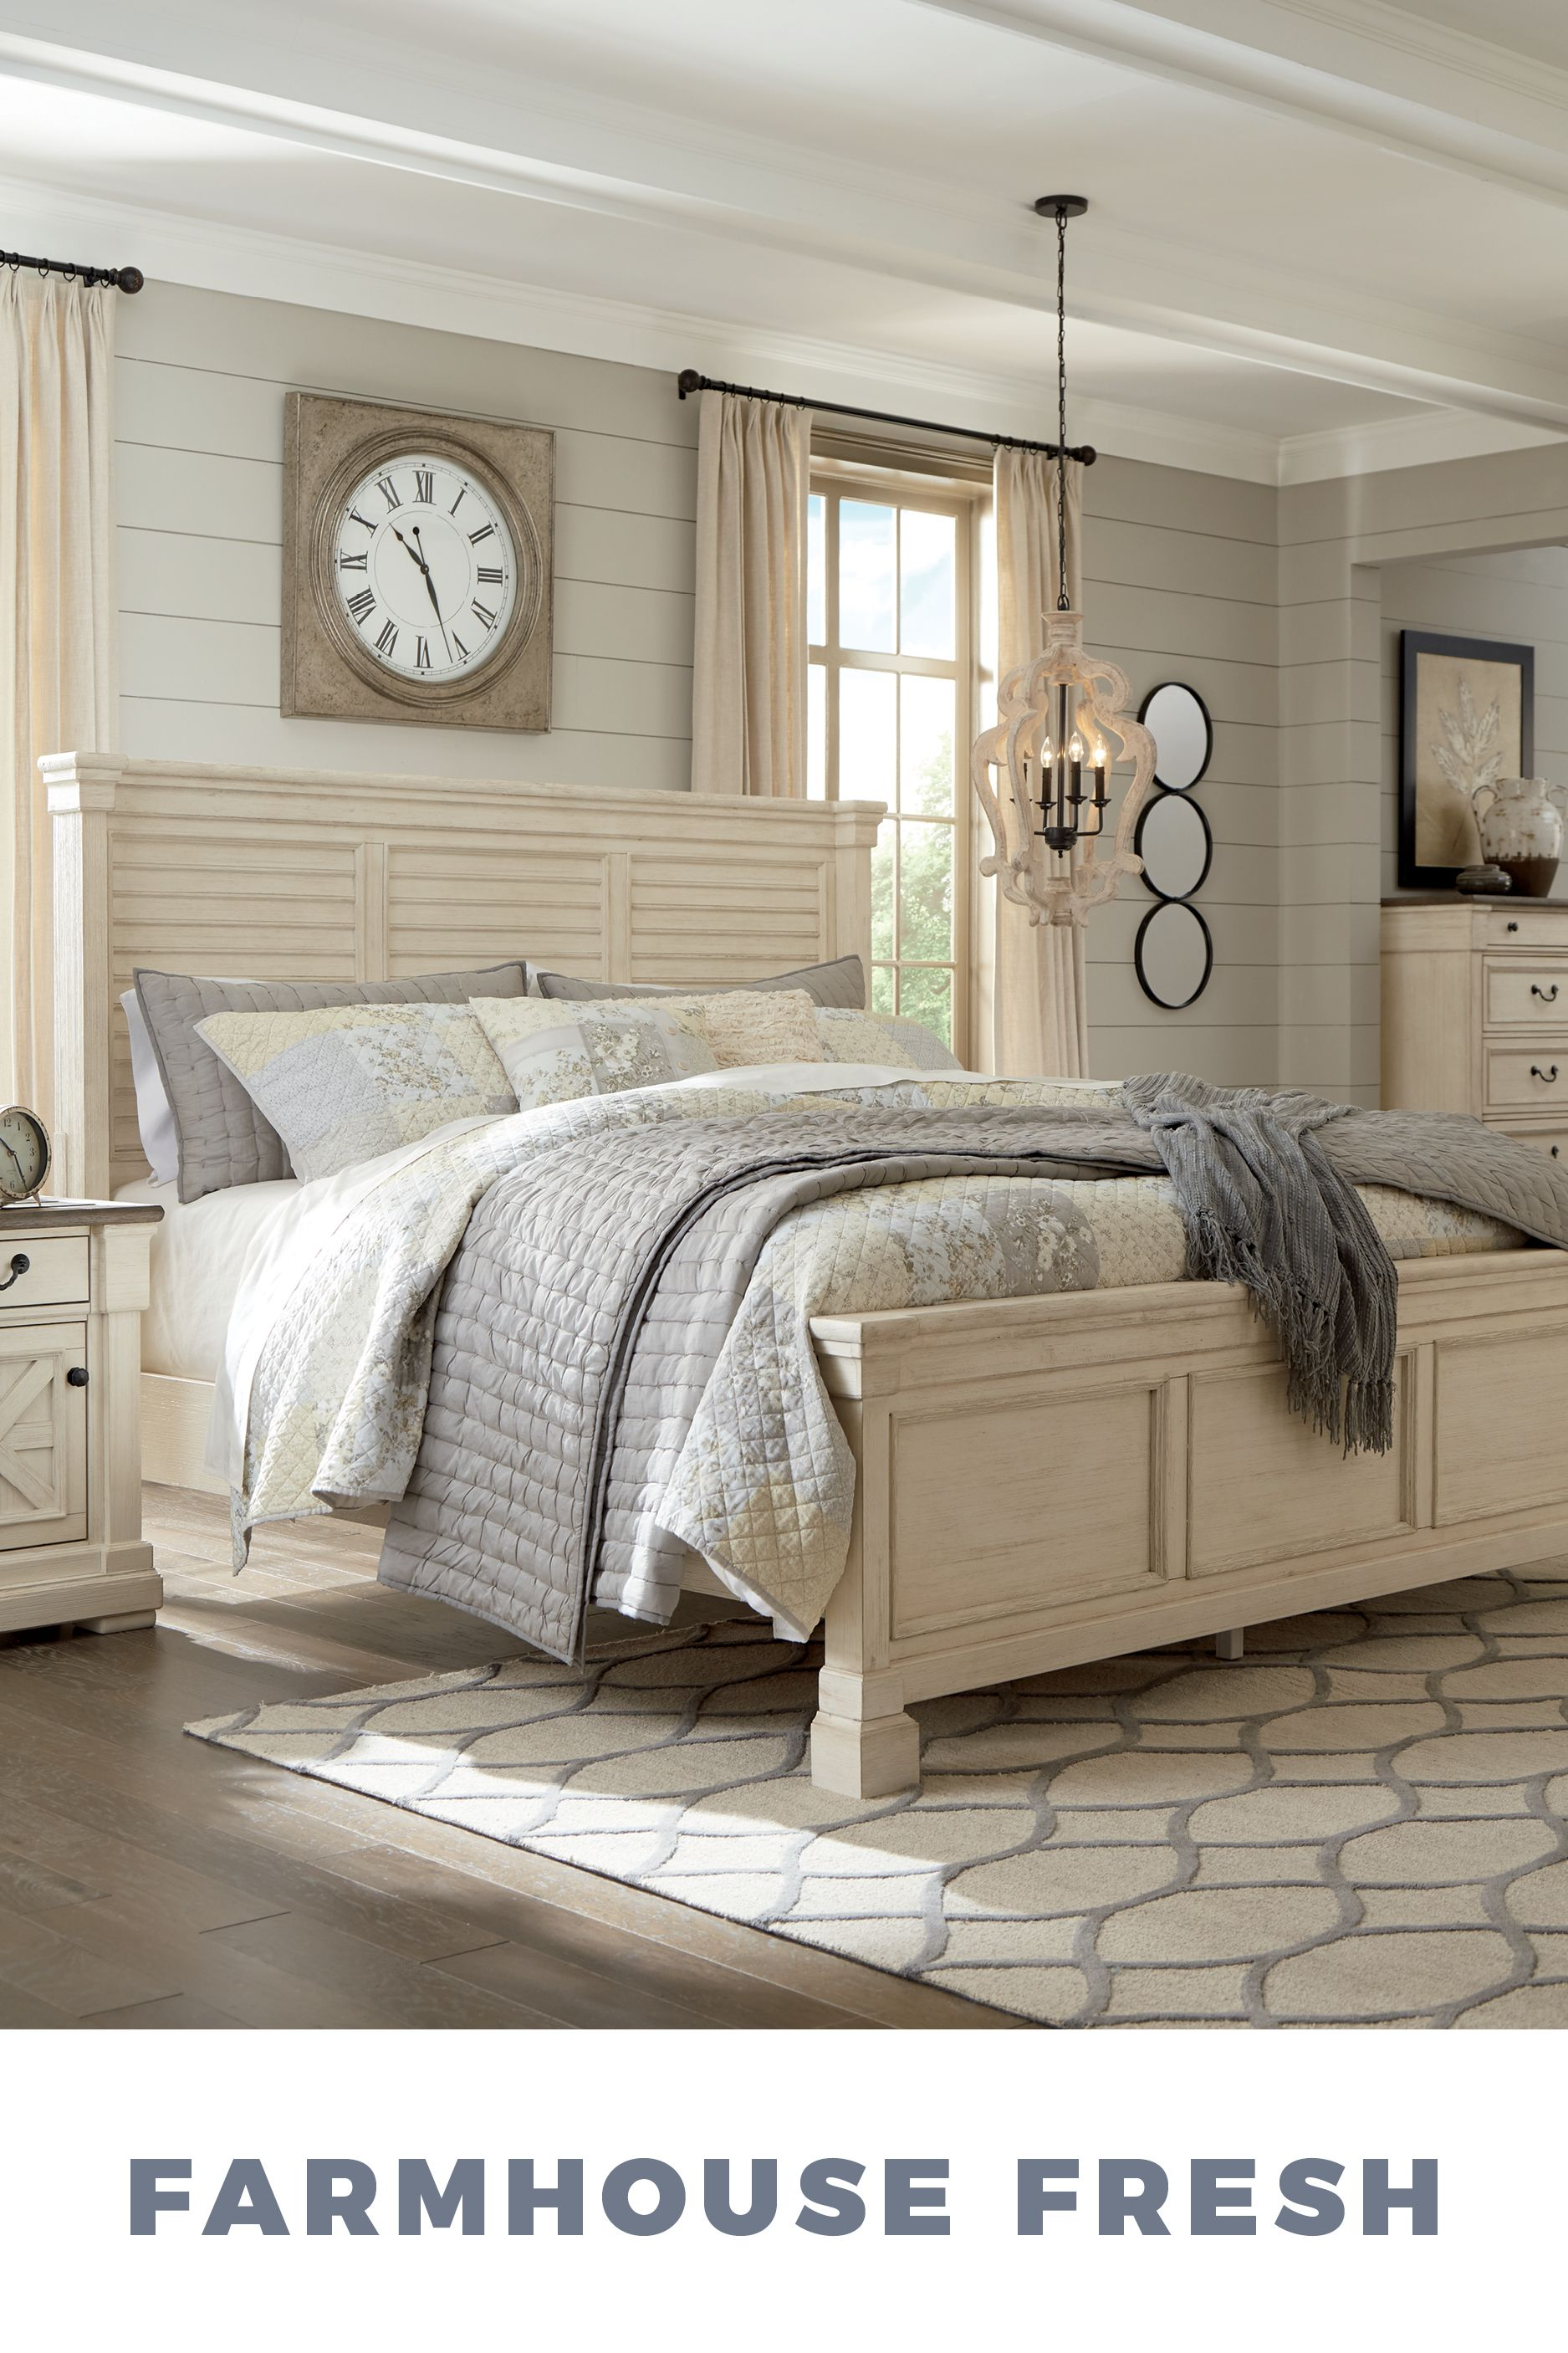 Farmhouse Fresh Master Bedroom From Ashley Furniture Farmhouse Home Decor Ideas Inspiration Style Drea White Panel Beds White Paneling King Bedroom Sets